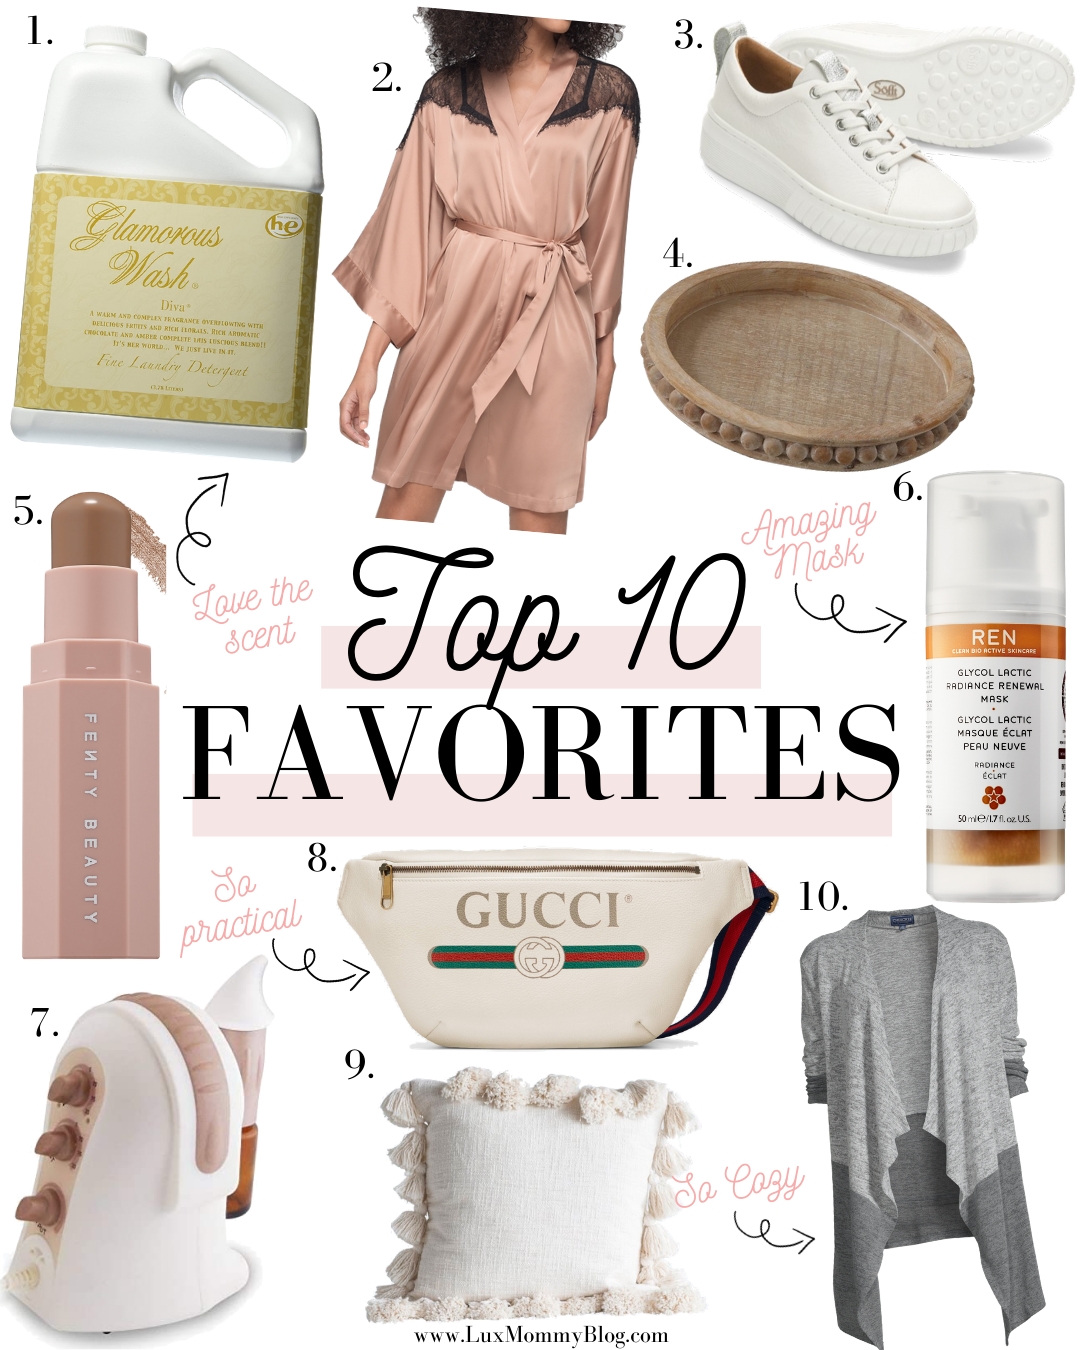 Houston Lifestyle and Fashion Blogger LuxMommy shares her Top 10 Favorites